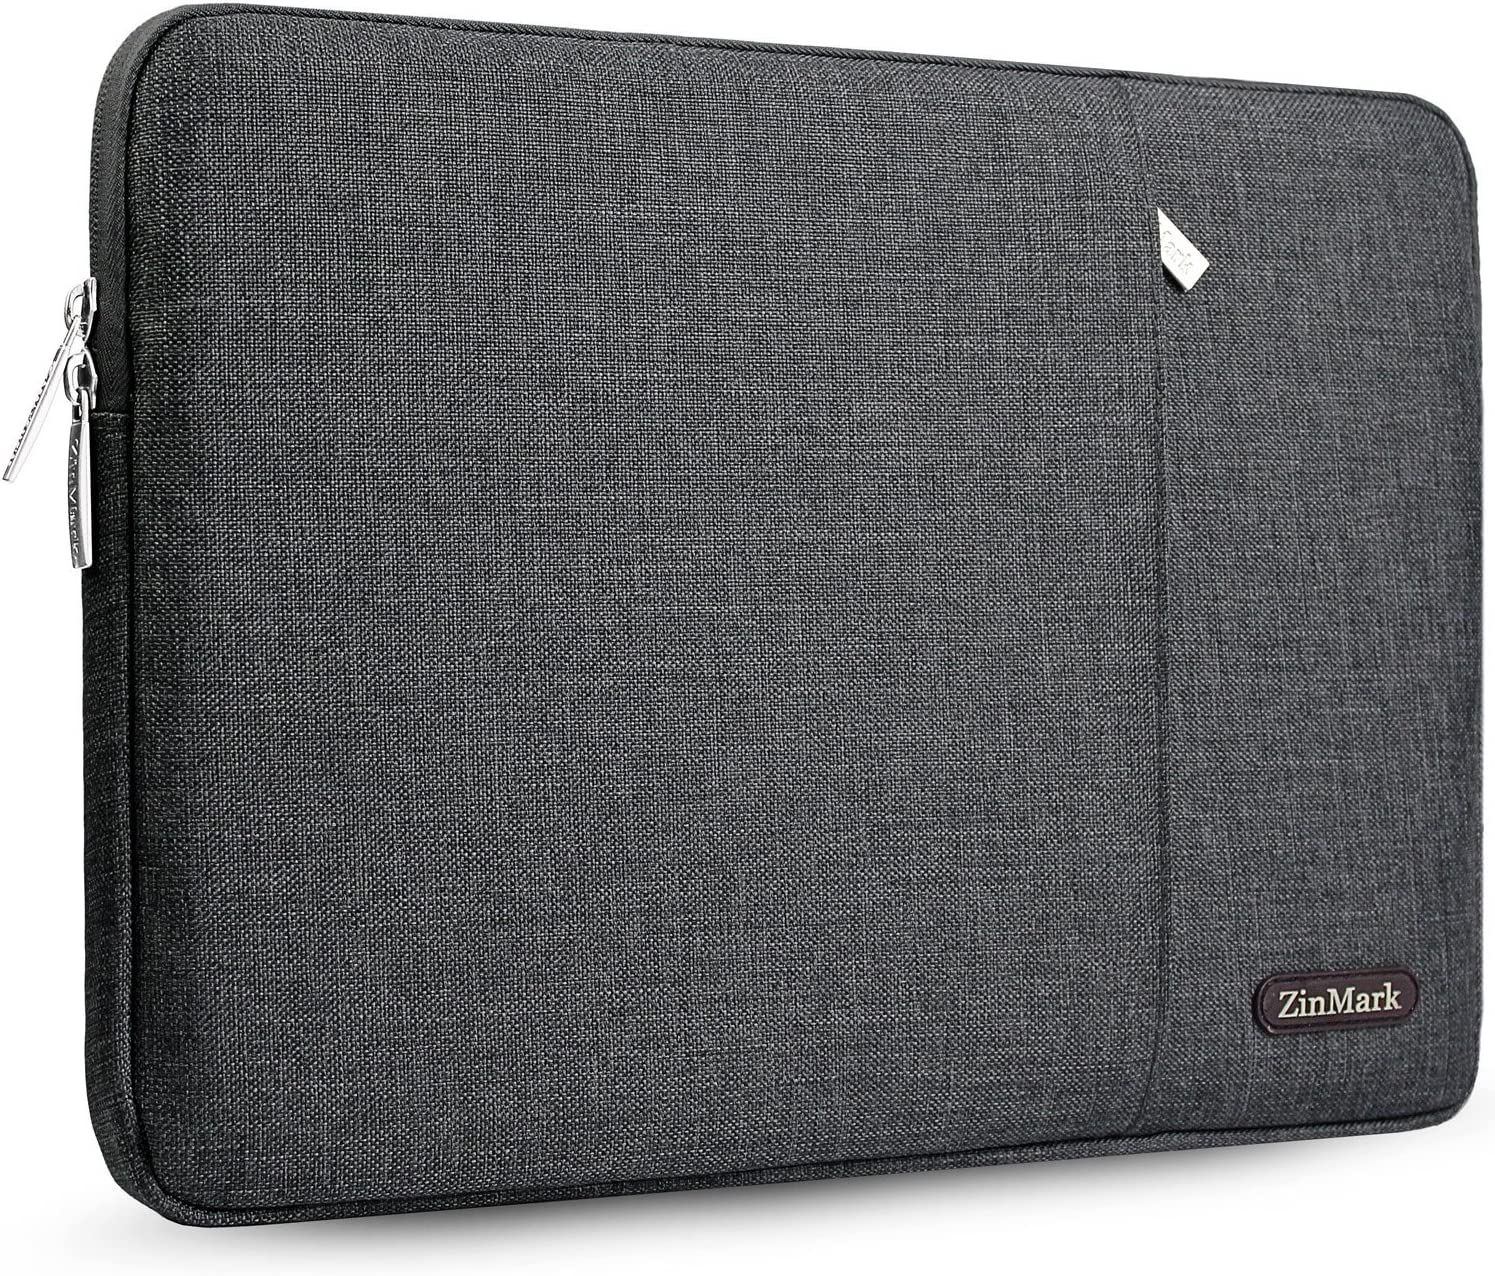 "ZinMark Laptop Sleeve Case 13-13.3 Inch Compatible MacBook Air 13"" (2012-2017) / MacBook Pro 13"" Without Retina A1278 and Most 14 Inch Notebooks, Spill-Resistant Protective Bag, Dark Gray"